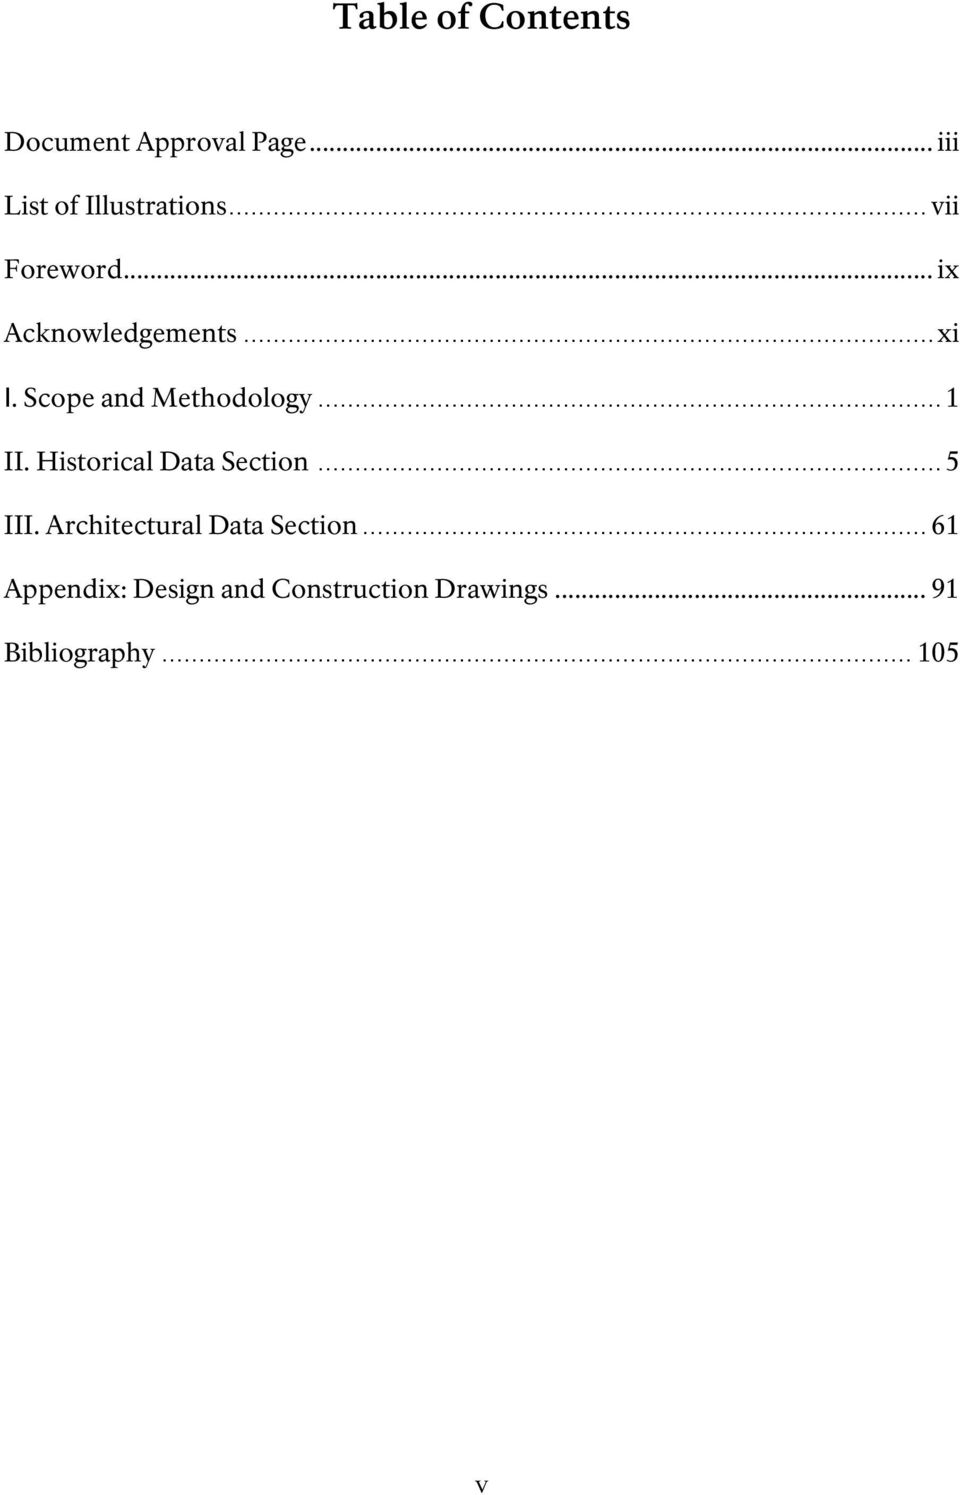 .. 1 II. Historical Data Section... 5 III. Architectural Data Section.